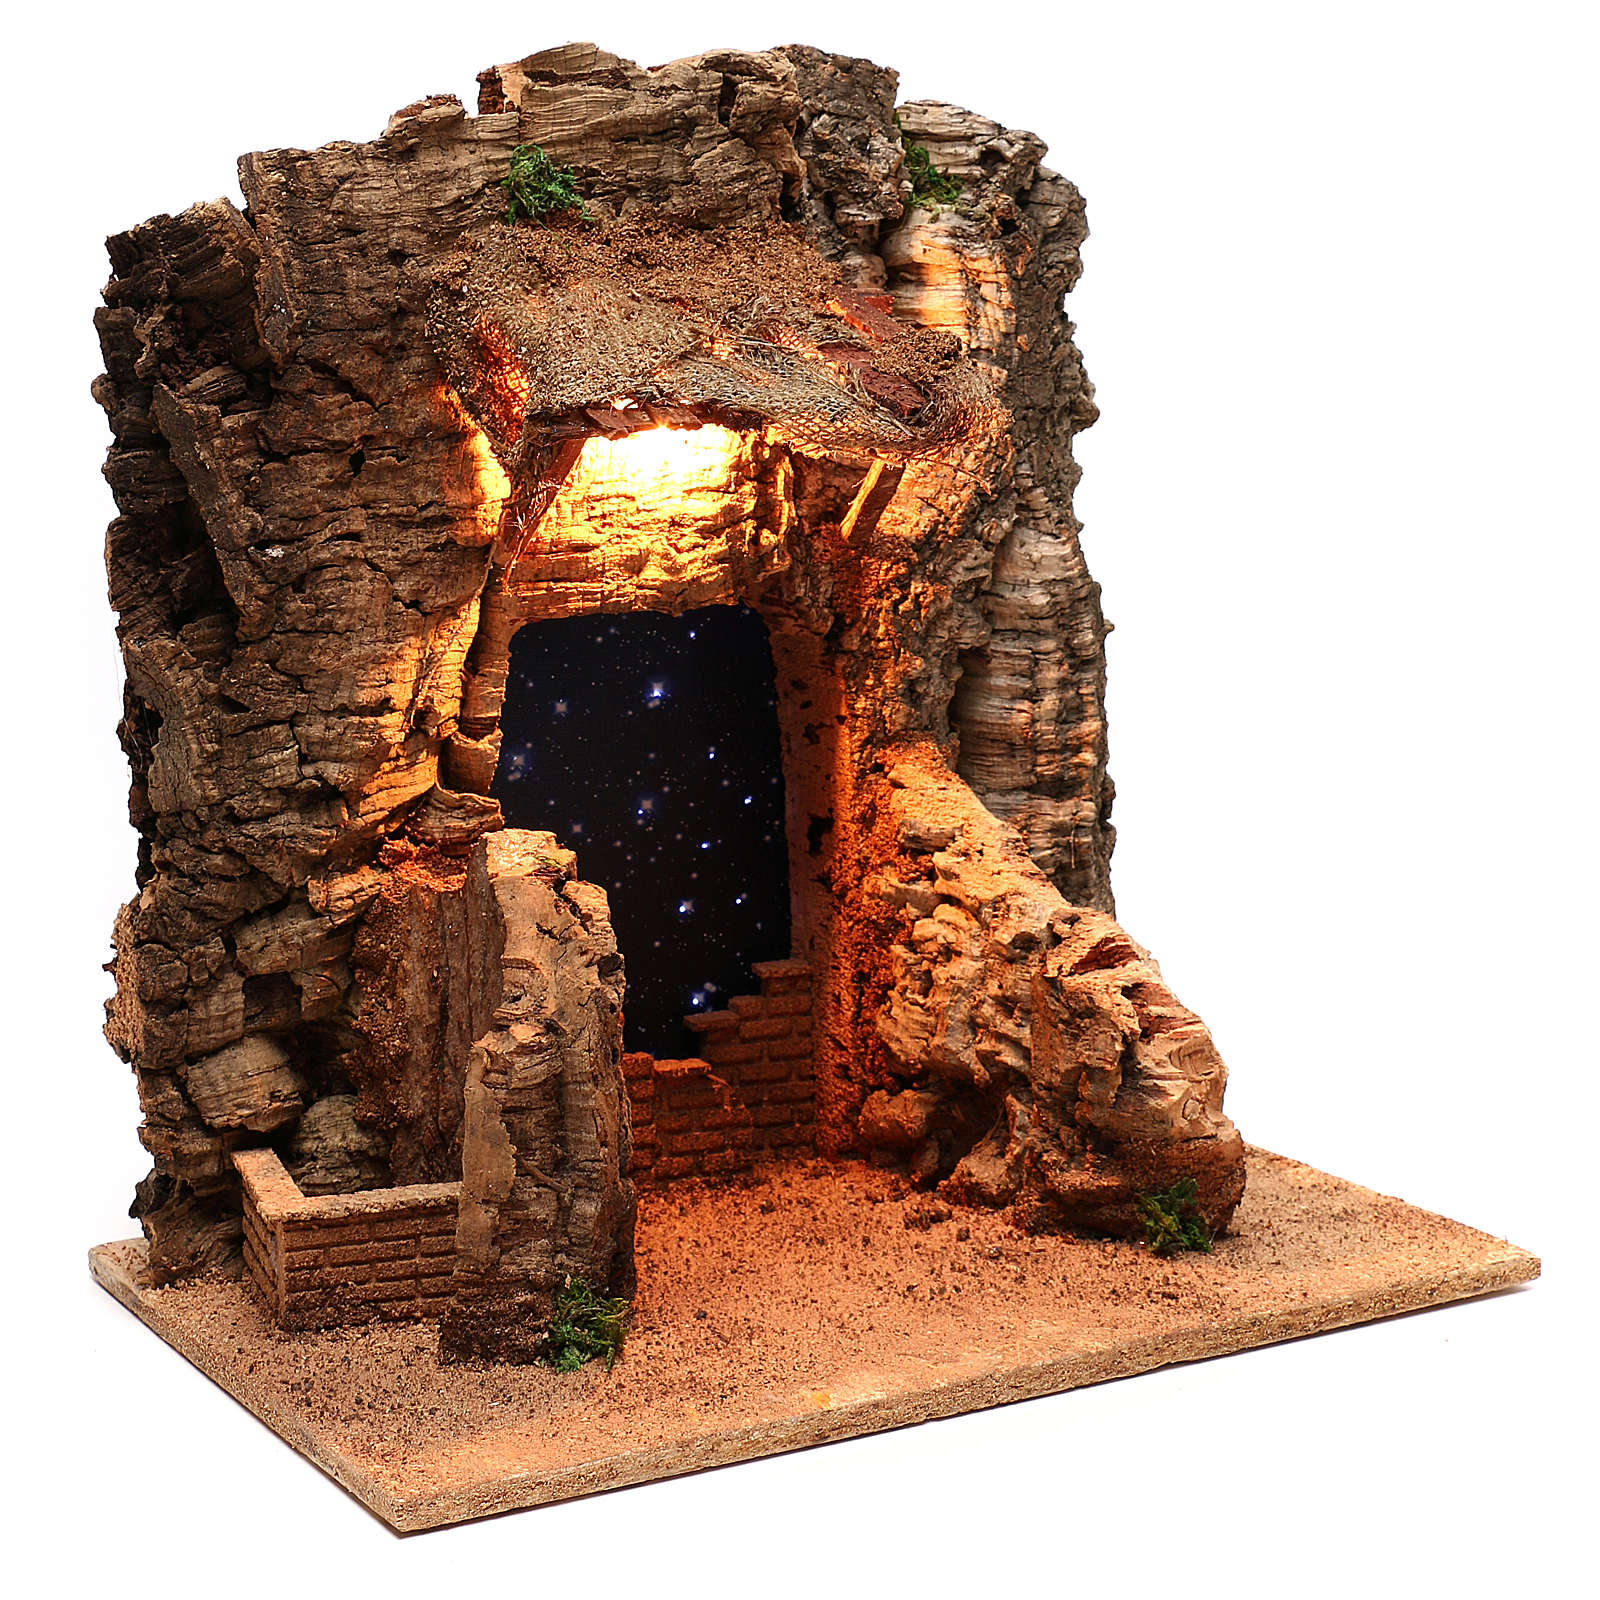 Rustic hut with sky background for Neapolitan Nativity scene of 10 cm 4